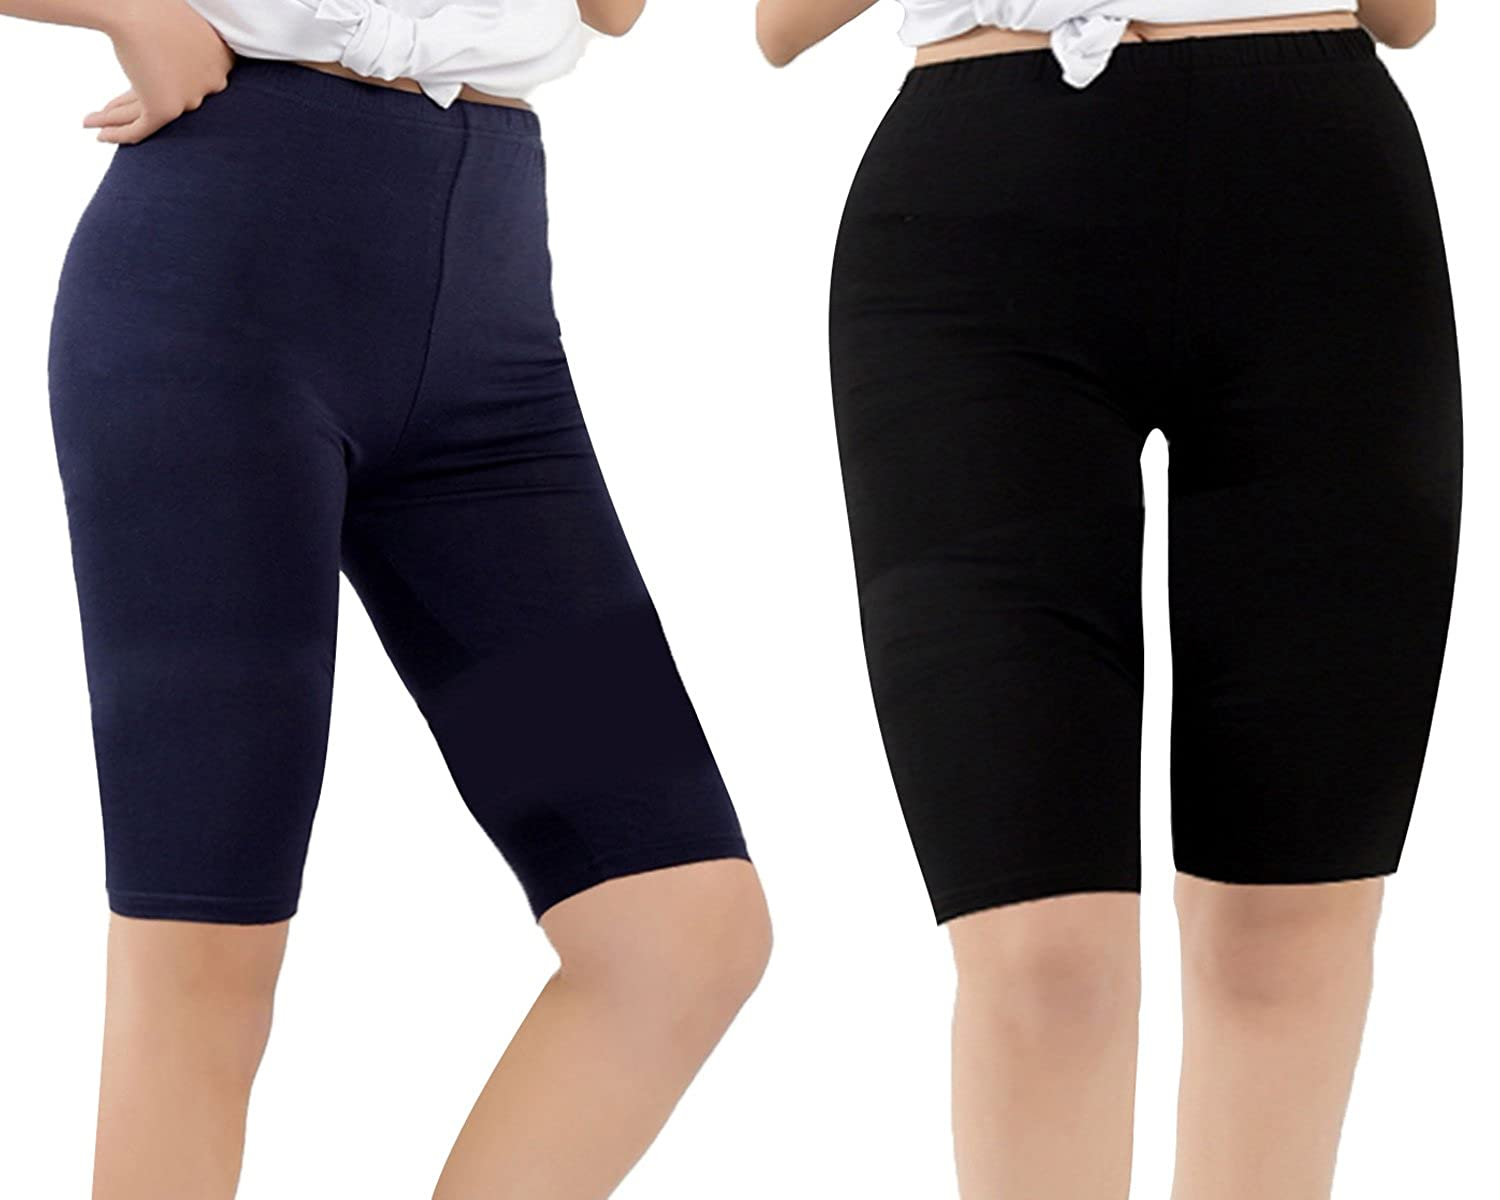 2018セール Zando SHORTS Black,navy レディース B07LF9Z5Z1 2 Pack 4X SHORTS Black,navy Blue US 3X - US 4X US 3X - US 4X|2 Pack Black,navy Blue, 那智勝浦町:9ea47494 --- ballyshannonshow.com